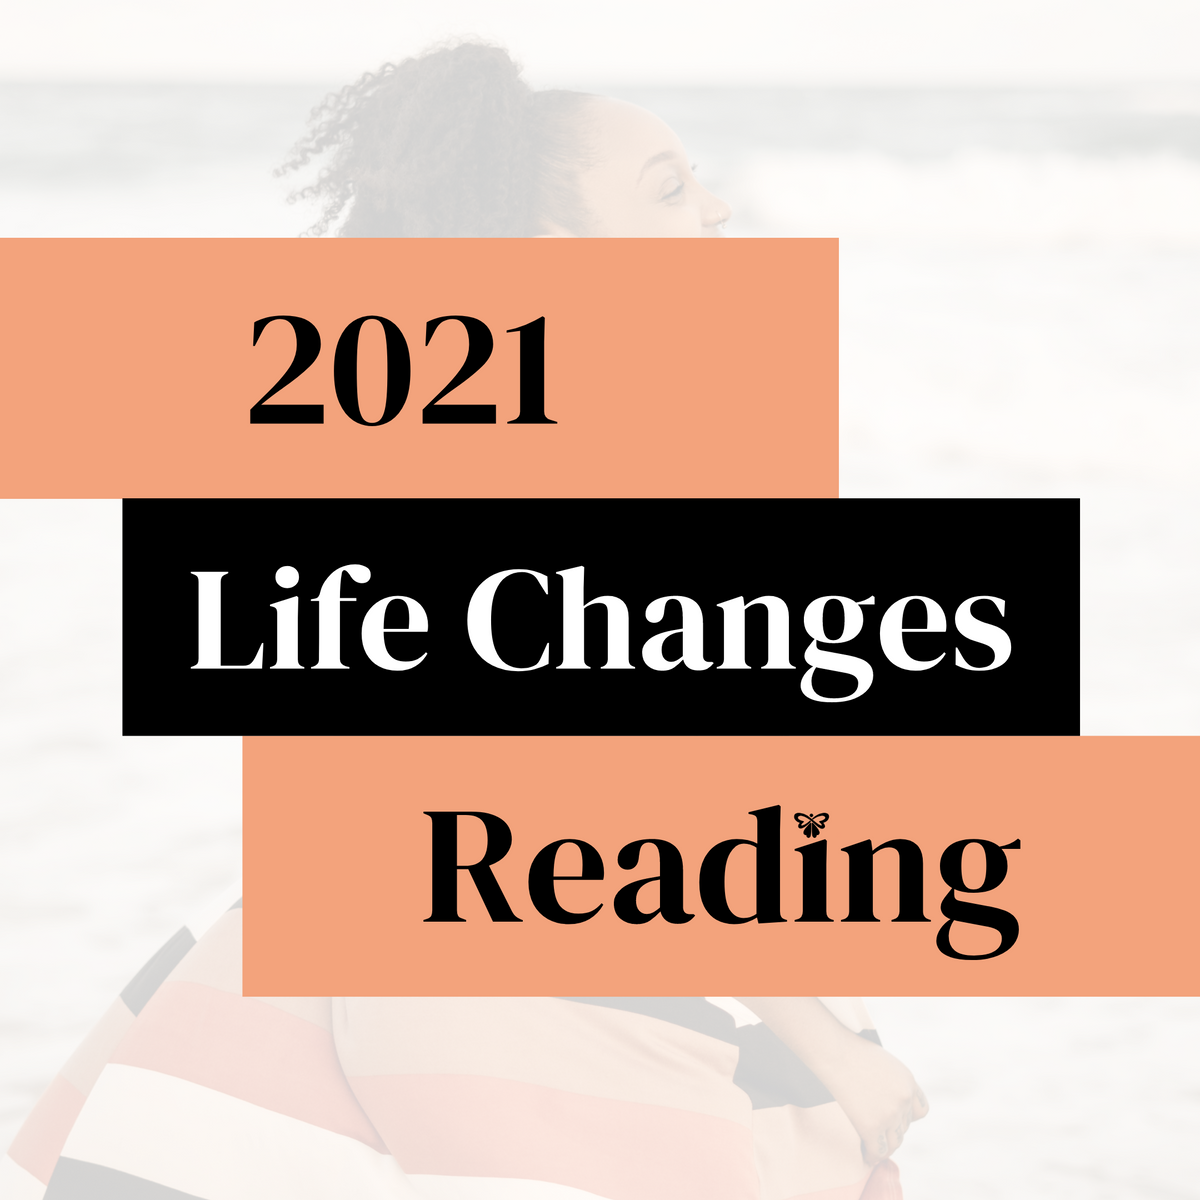 2021 Life Changes Reading